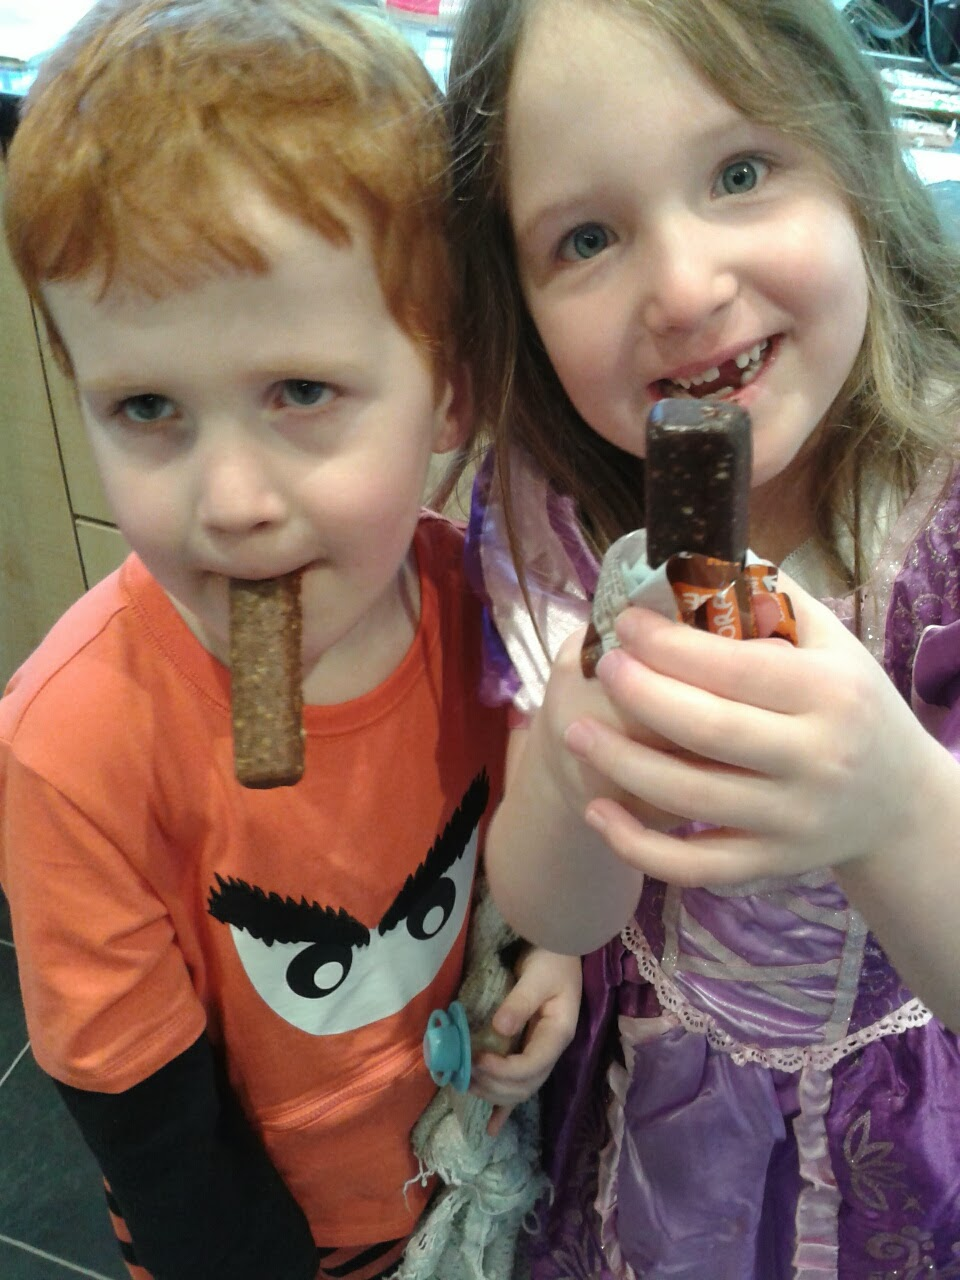 Caitlin and Ieuan testing Nakd snack bars